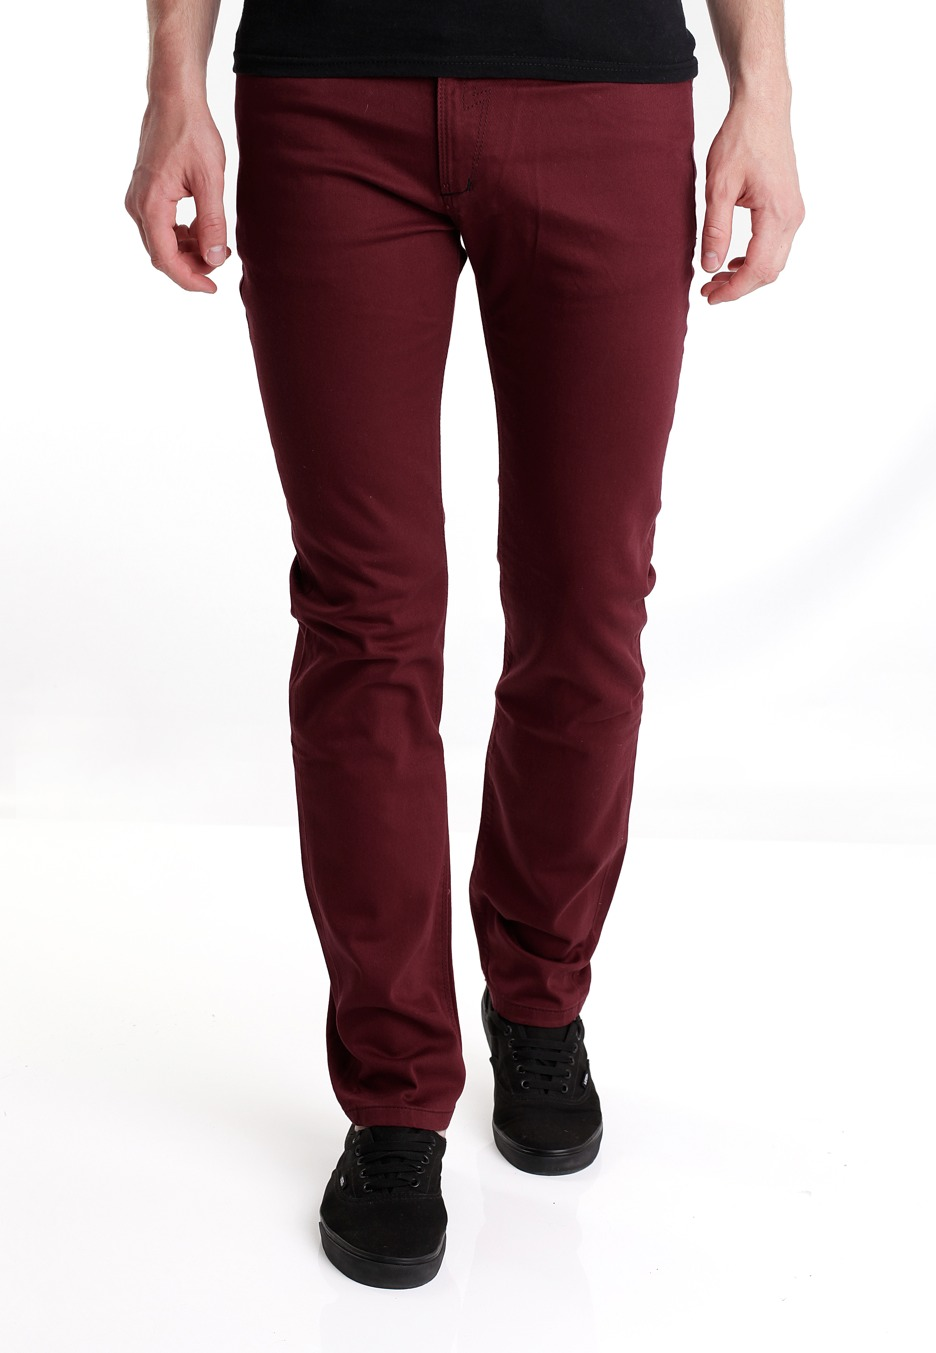 REELL - Skin Wine Red - Jeans - Impericon.com Worldwide